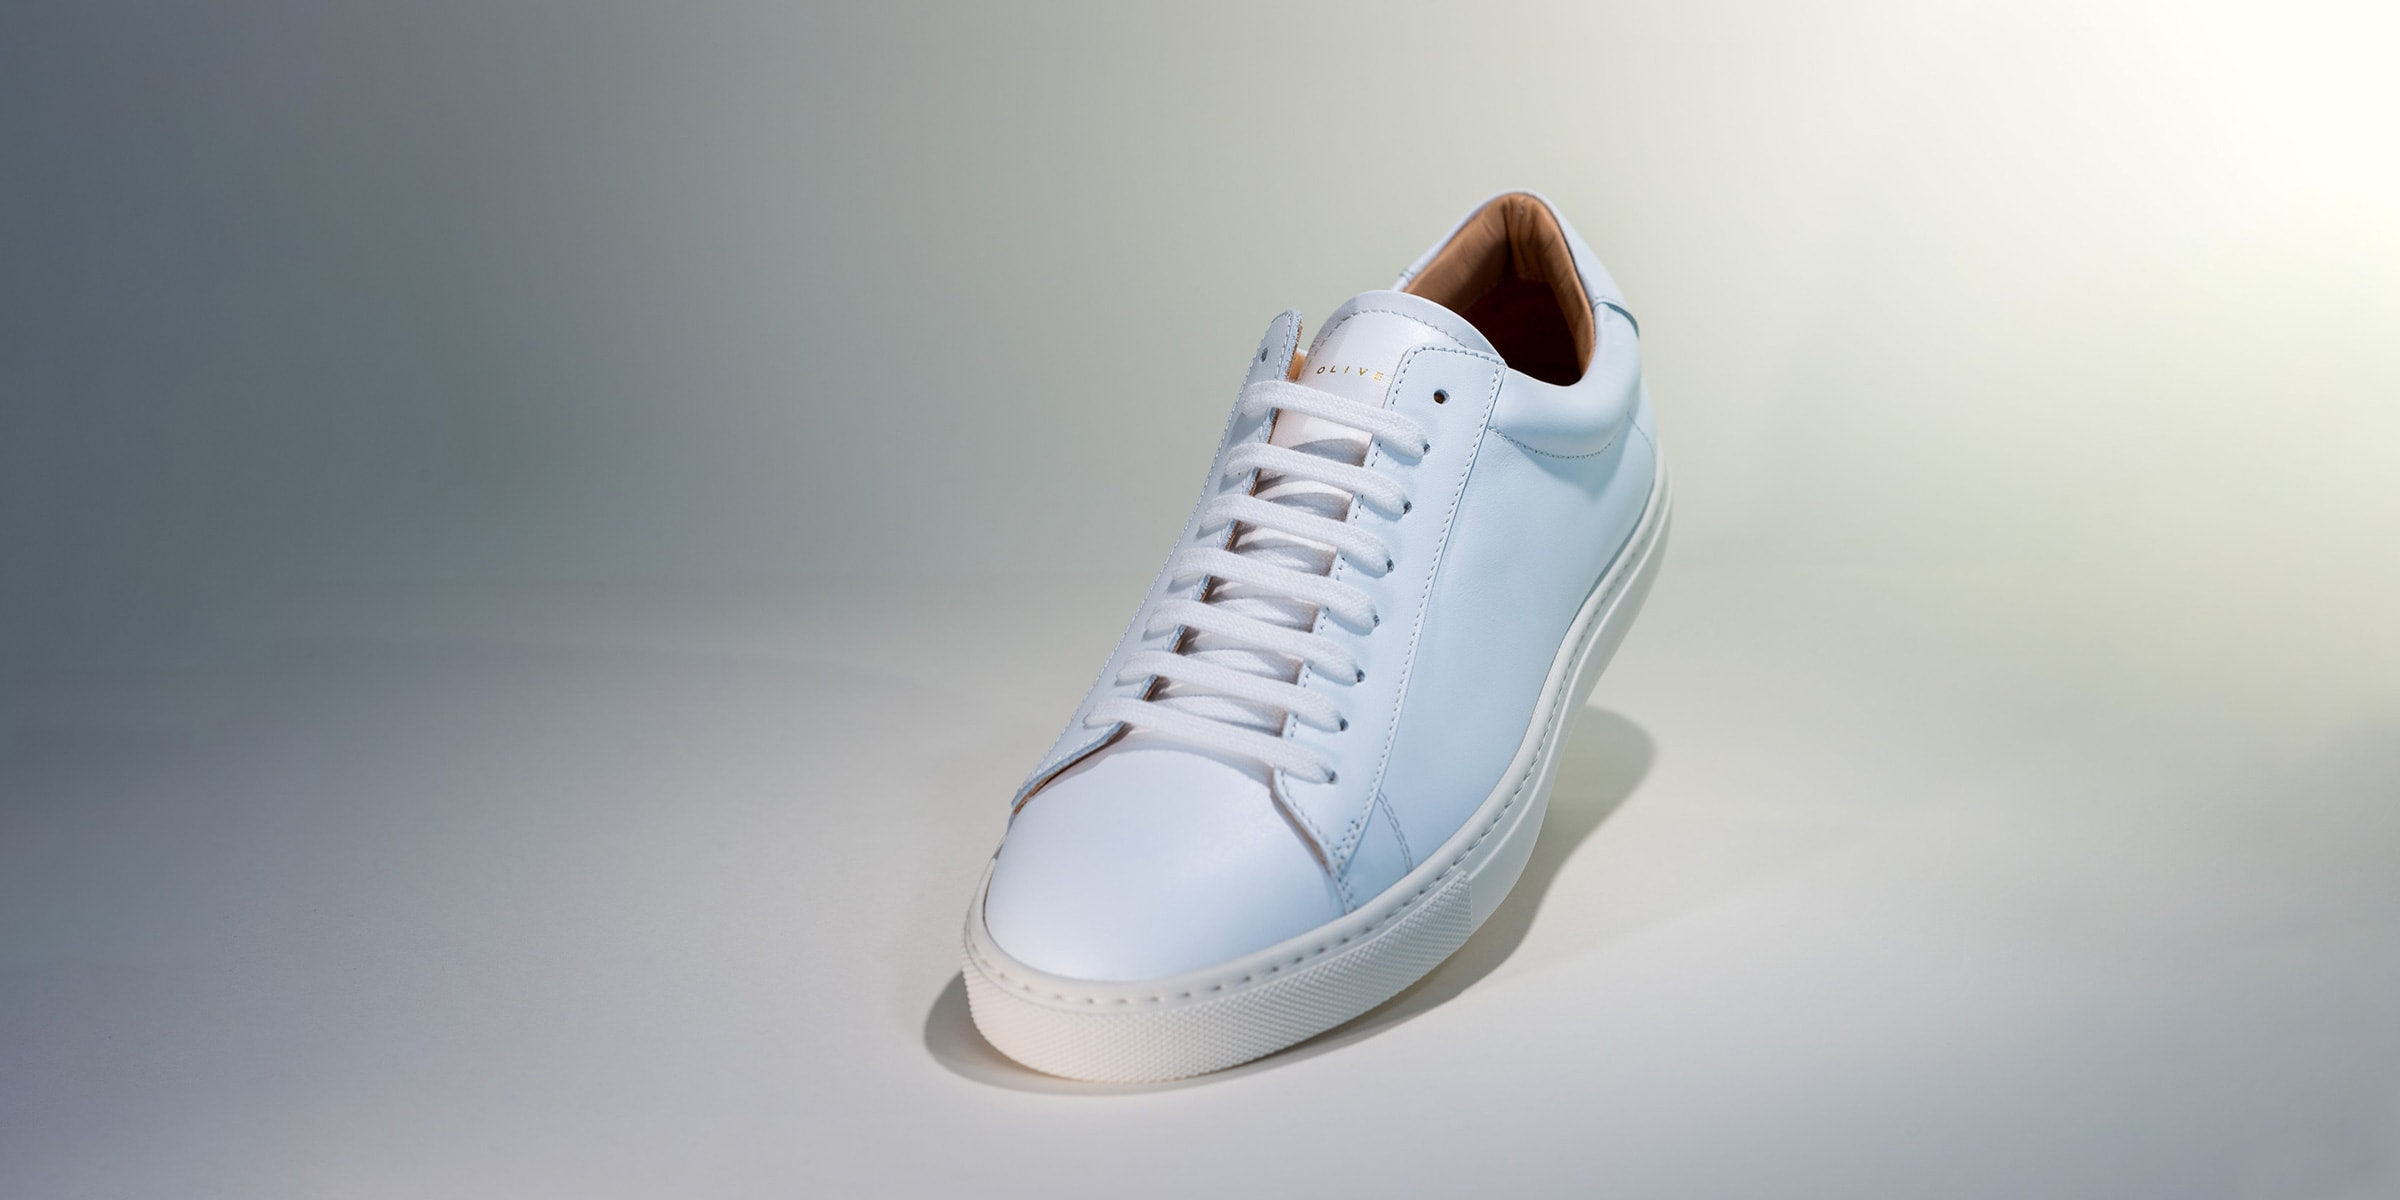 oliver cabell review low 1 sneakers - Luxe Digital